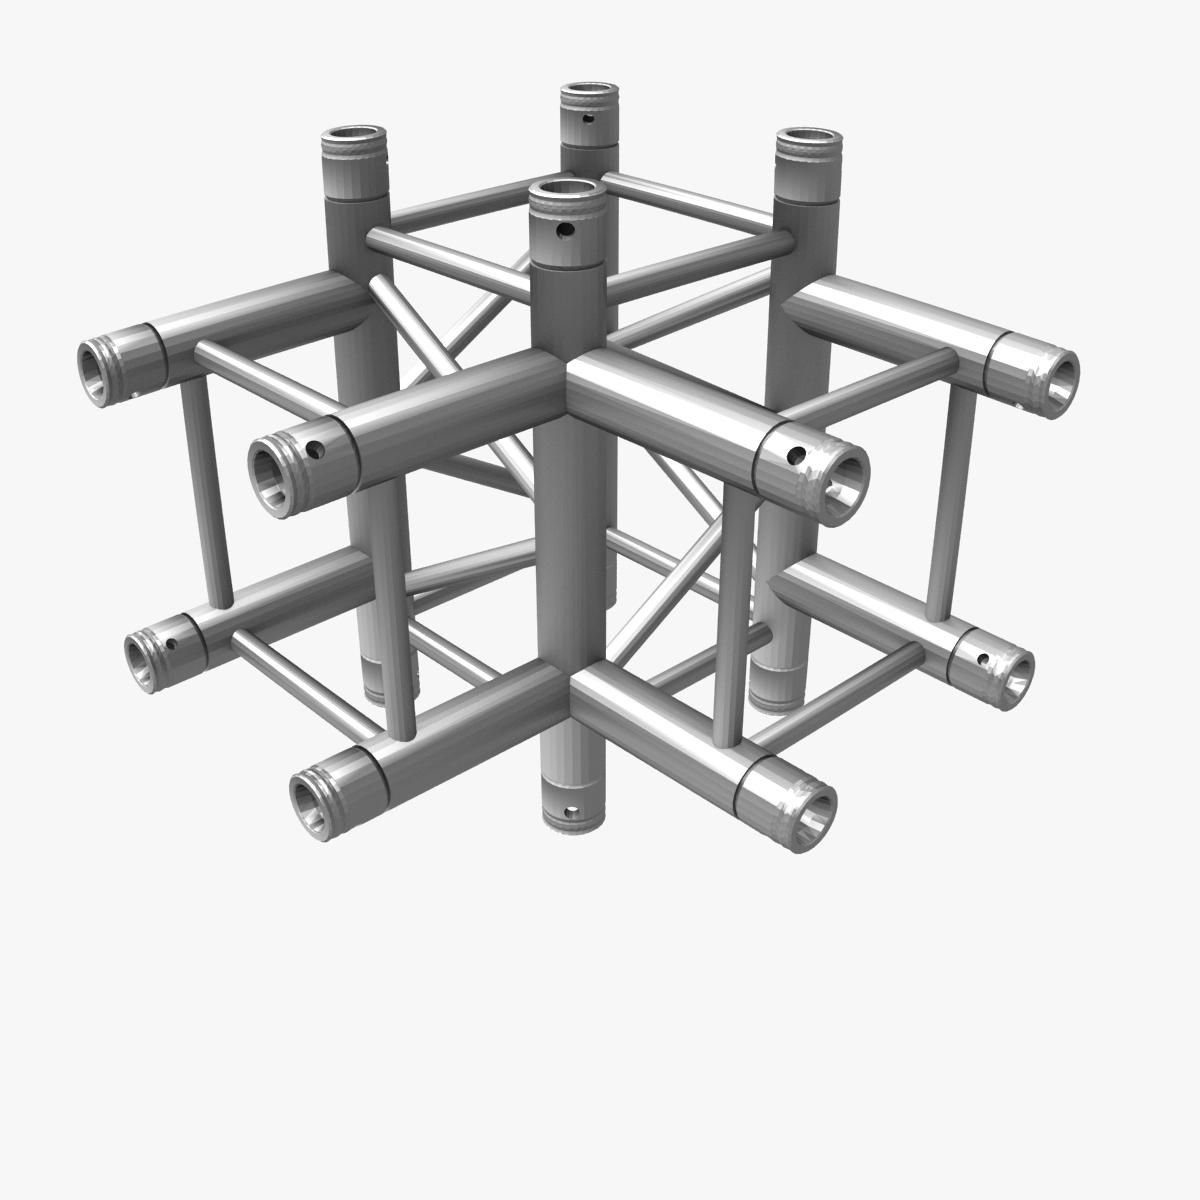 square truss standard (collection 24 modular) 3d model 3ds max dxf fbx c4d dae  texture obj 216366